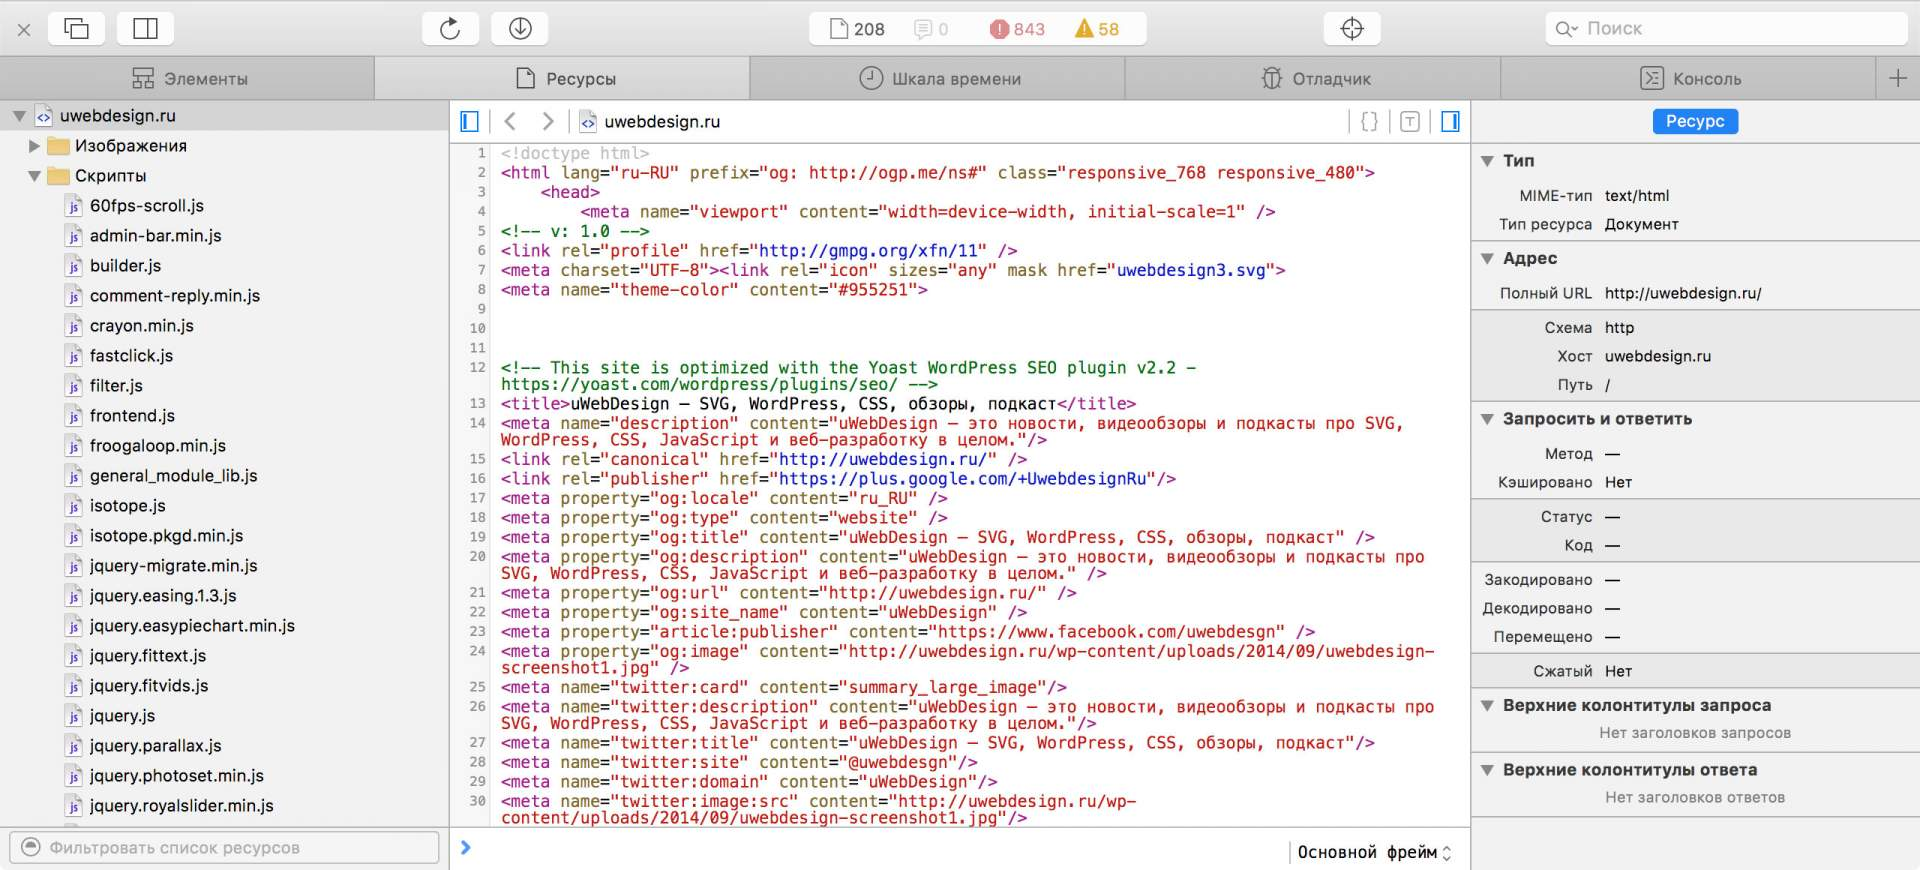 Safari 9 — Developer Tools (Resources)